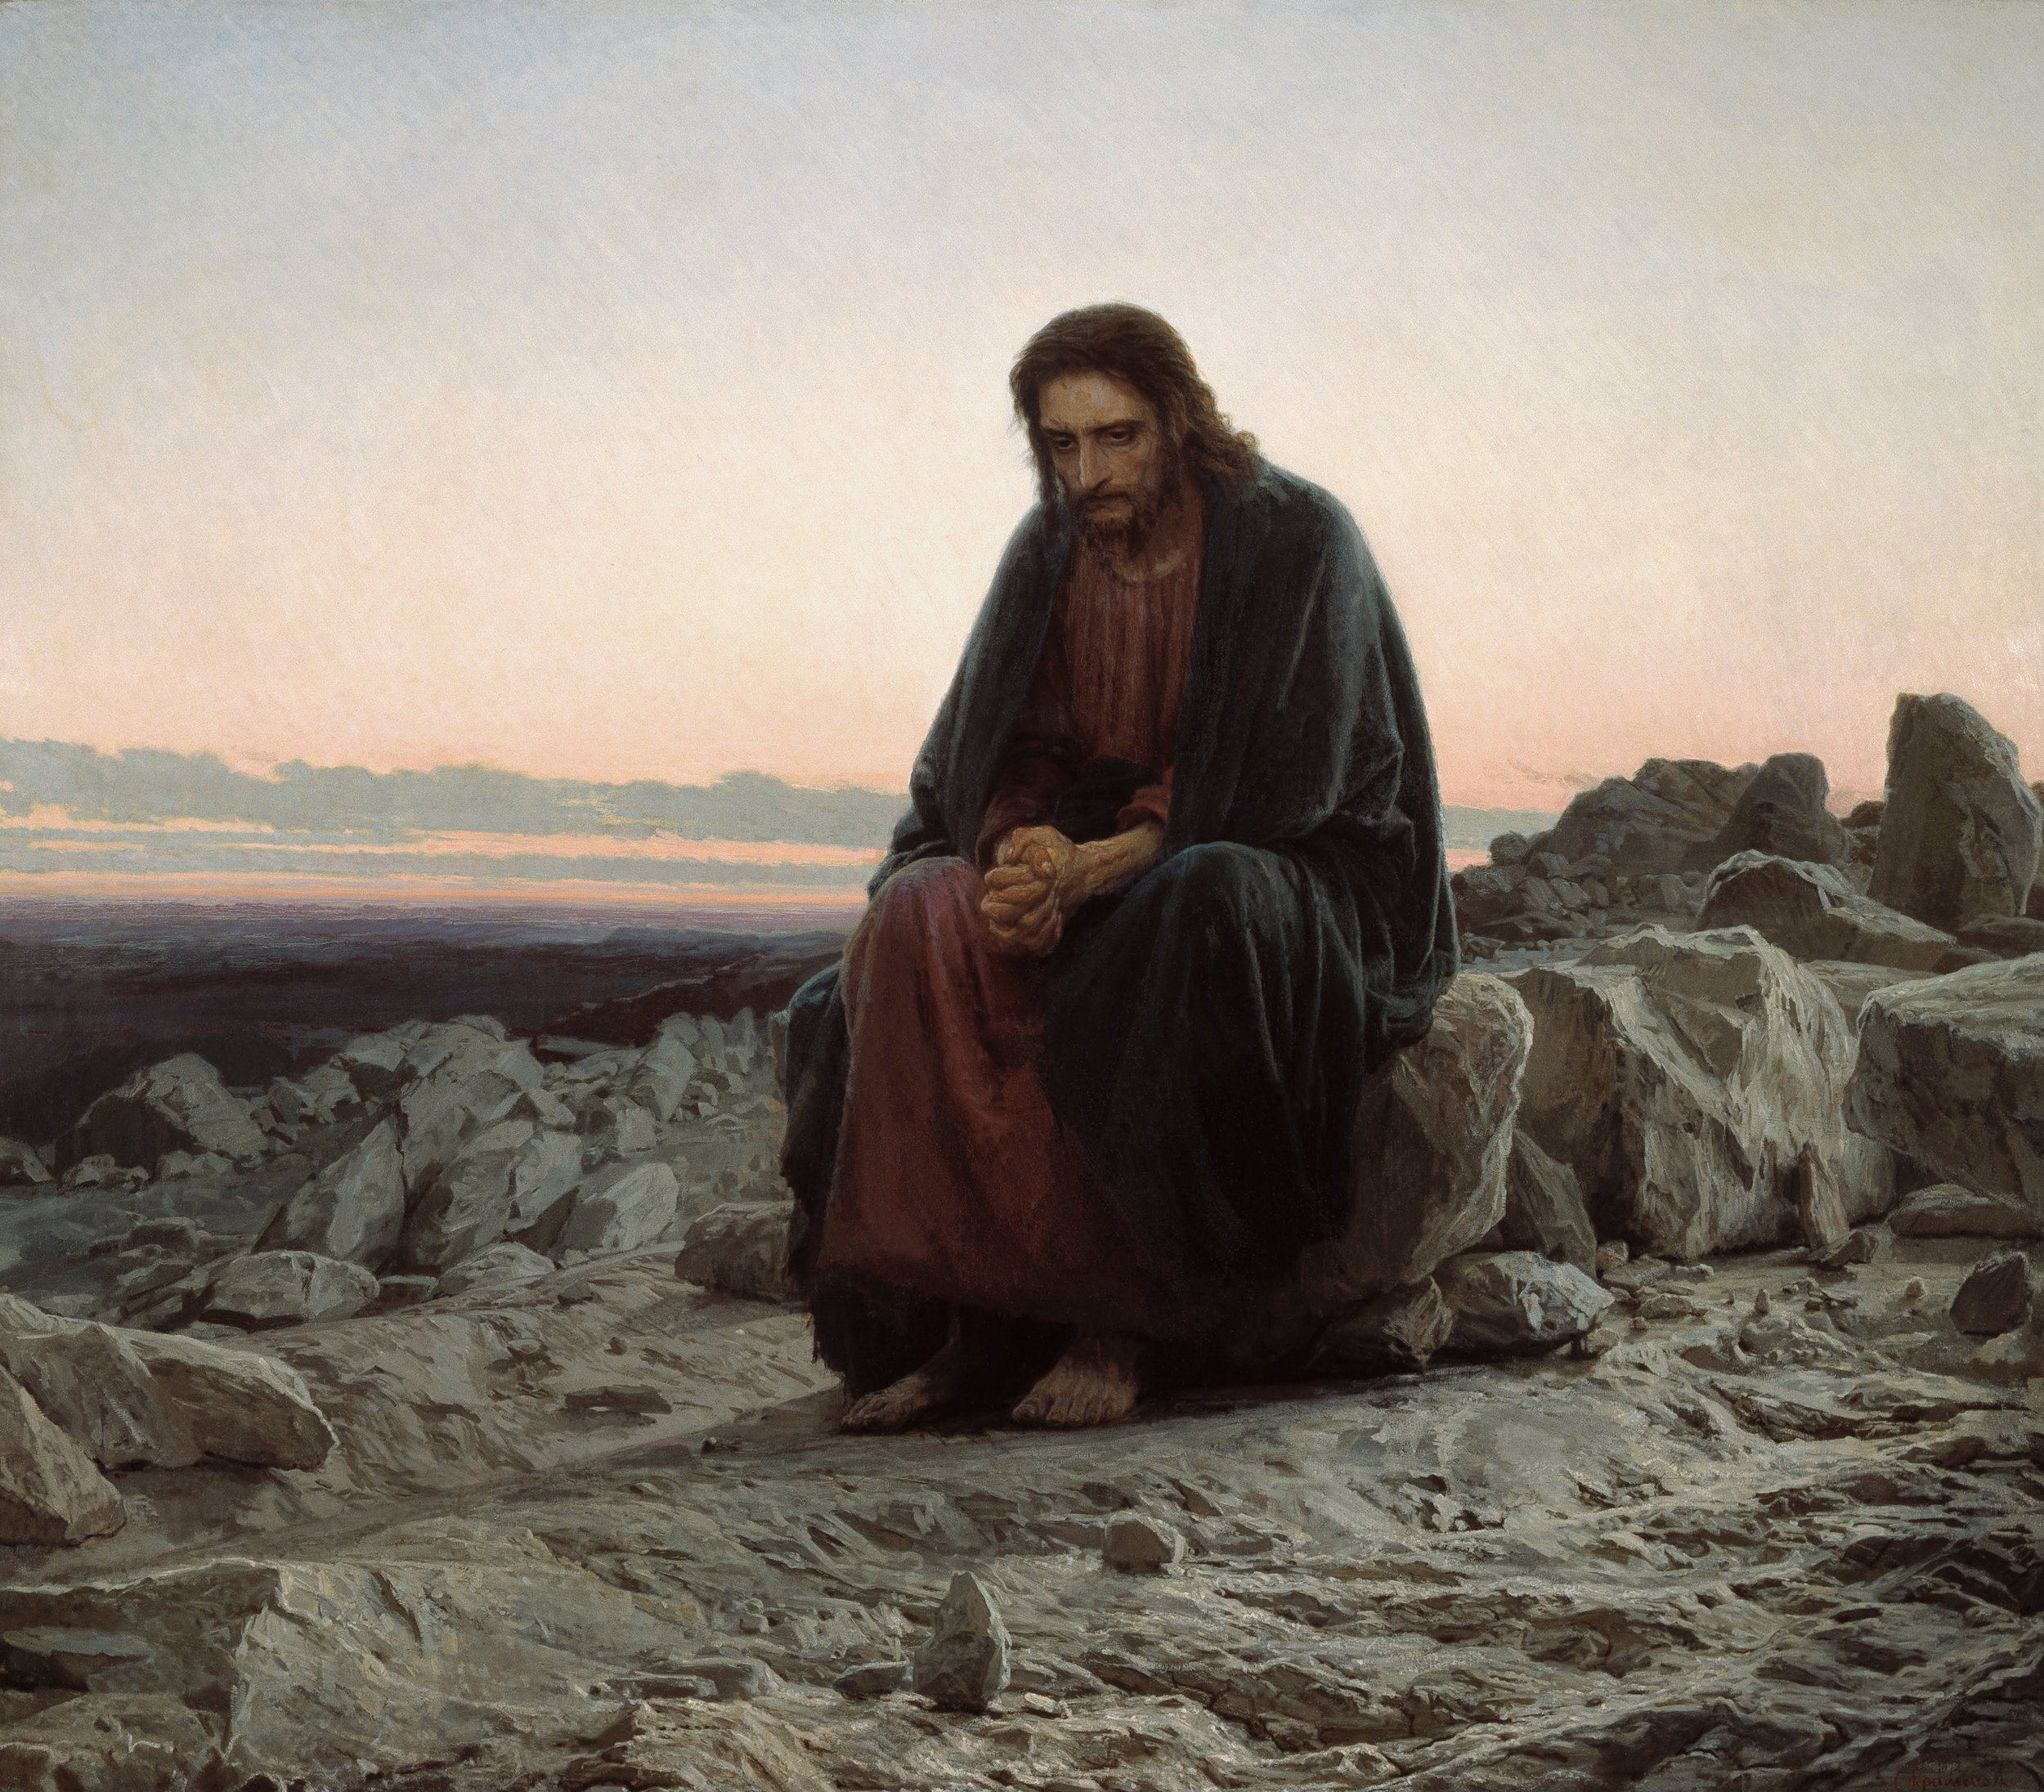 Christ in the Wilderness by Ivan Kramskoy